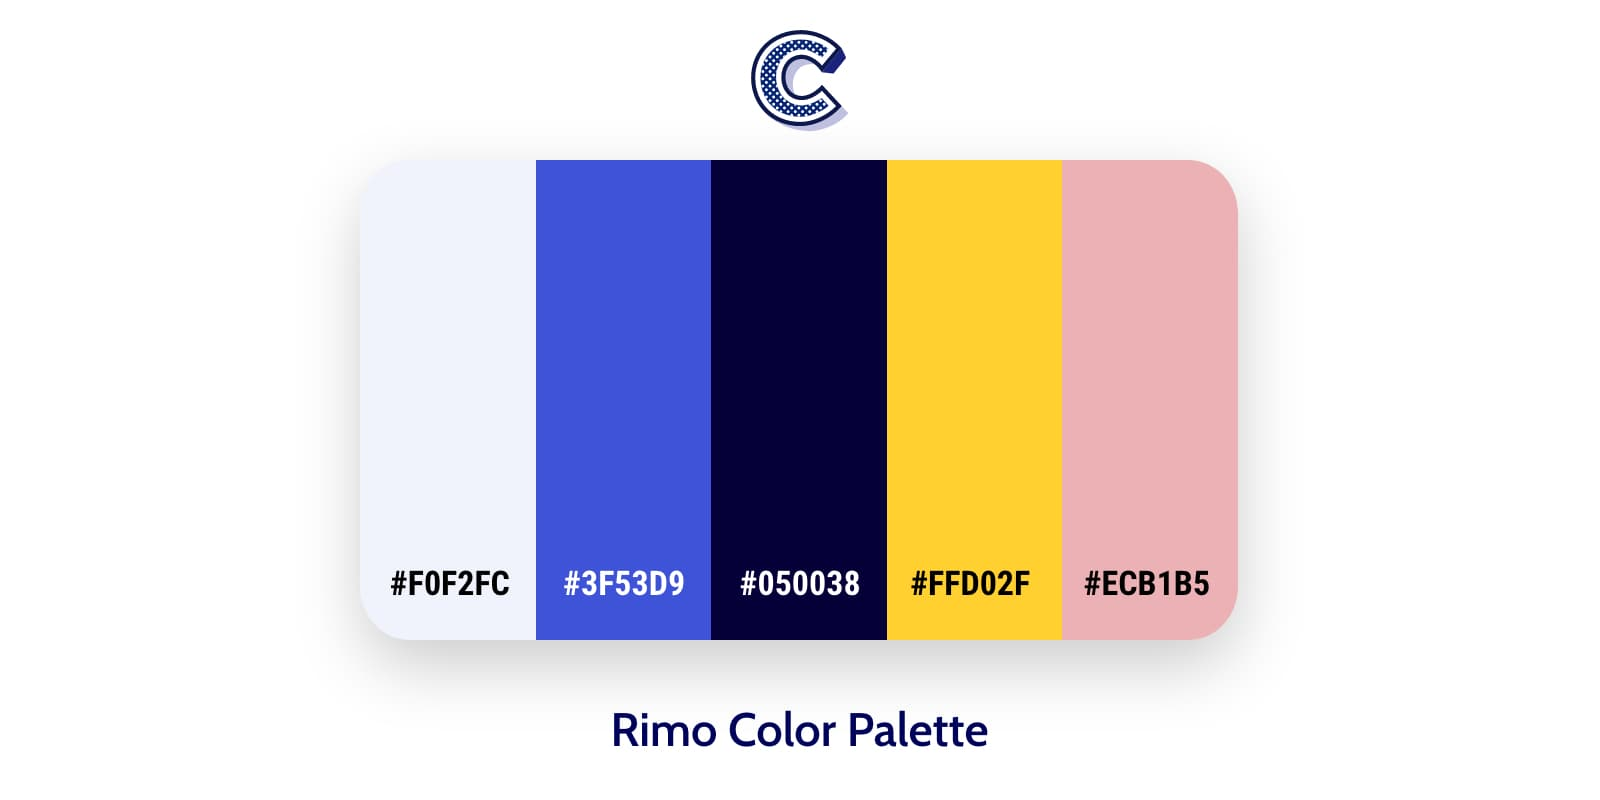 the featured image of rimo color palette